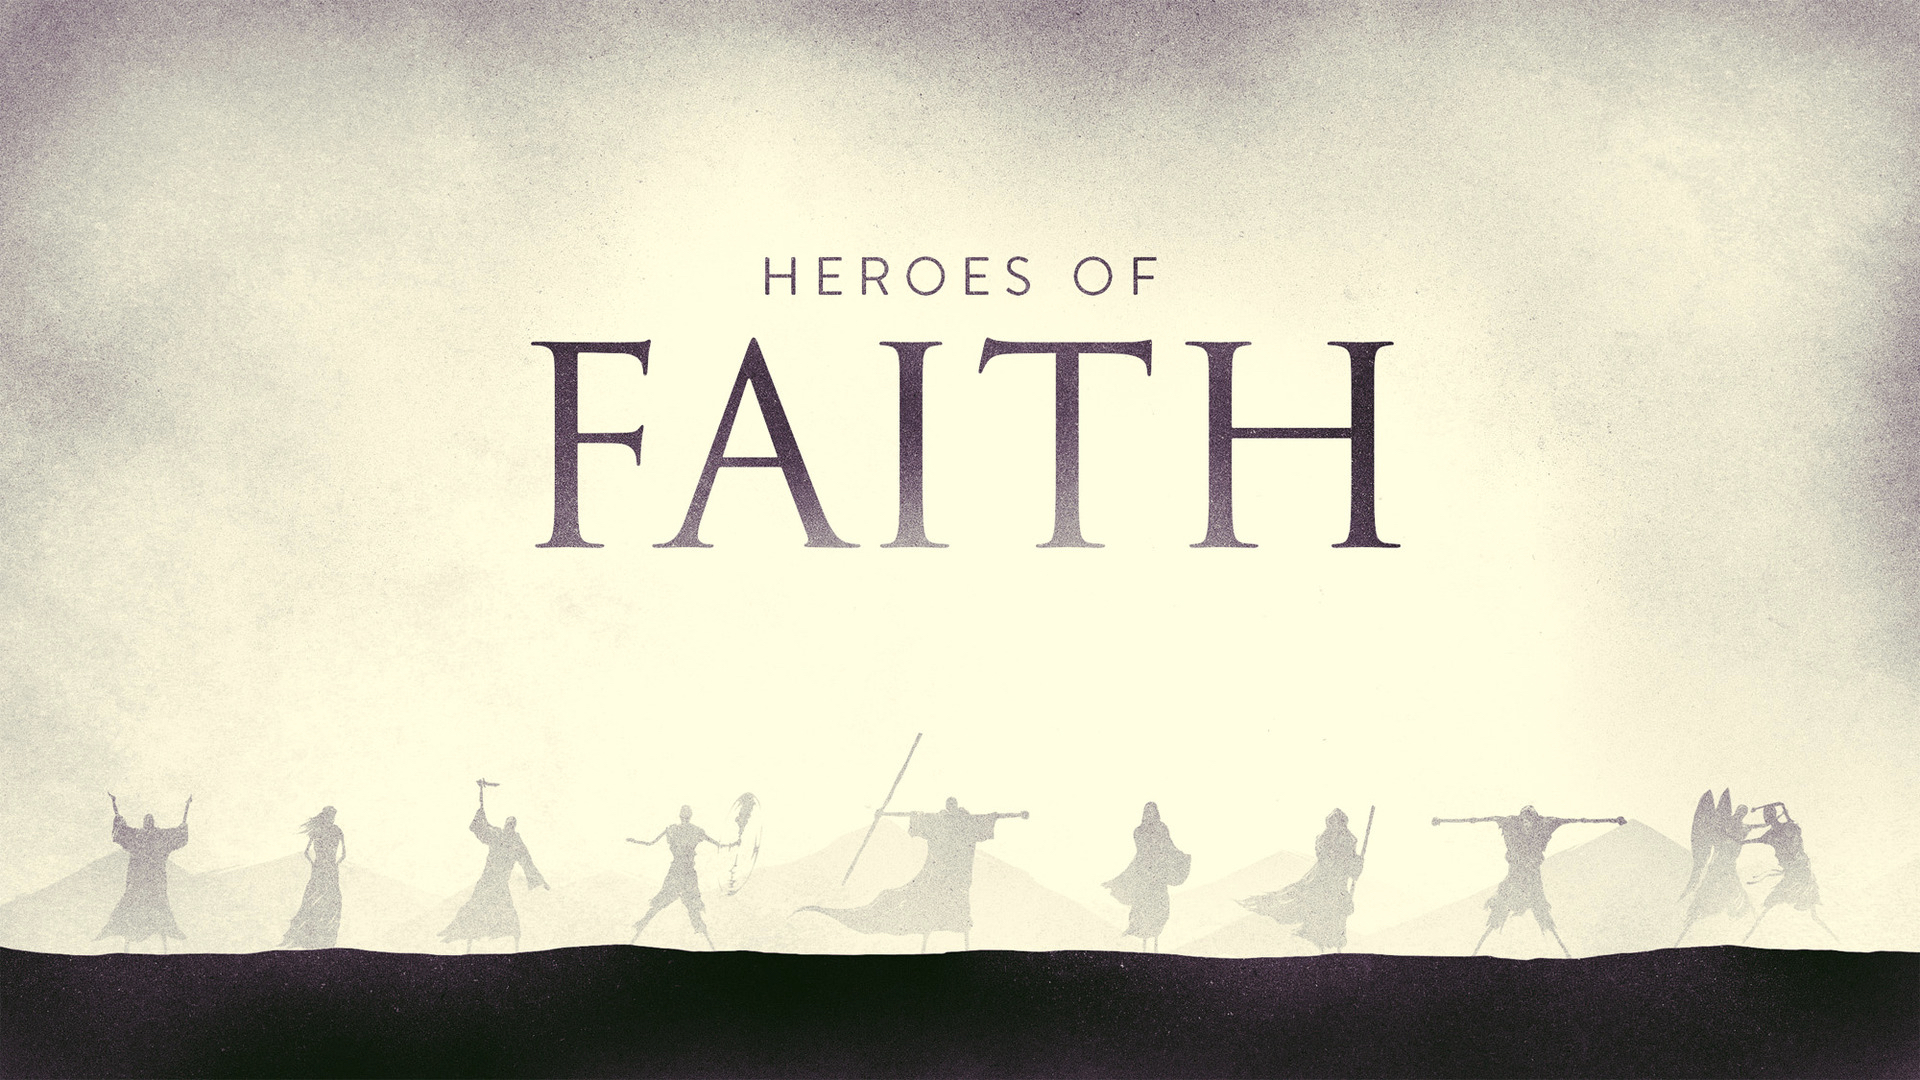 HEROES OF FAITH | SERIES - NOAH | 6.4.2018 | WATCHABRAHAM | 6.10.2018 | WATCHJACOB | 6.17.2018 | WATCHJOSEPH | 6.24.2018 | WATCH